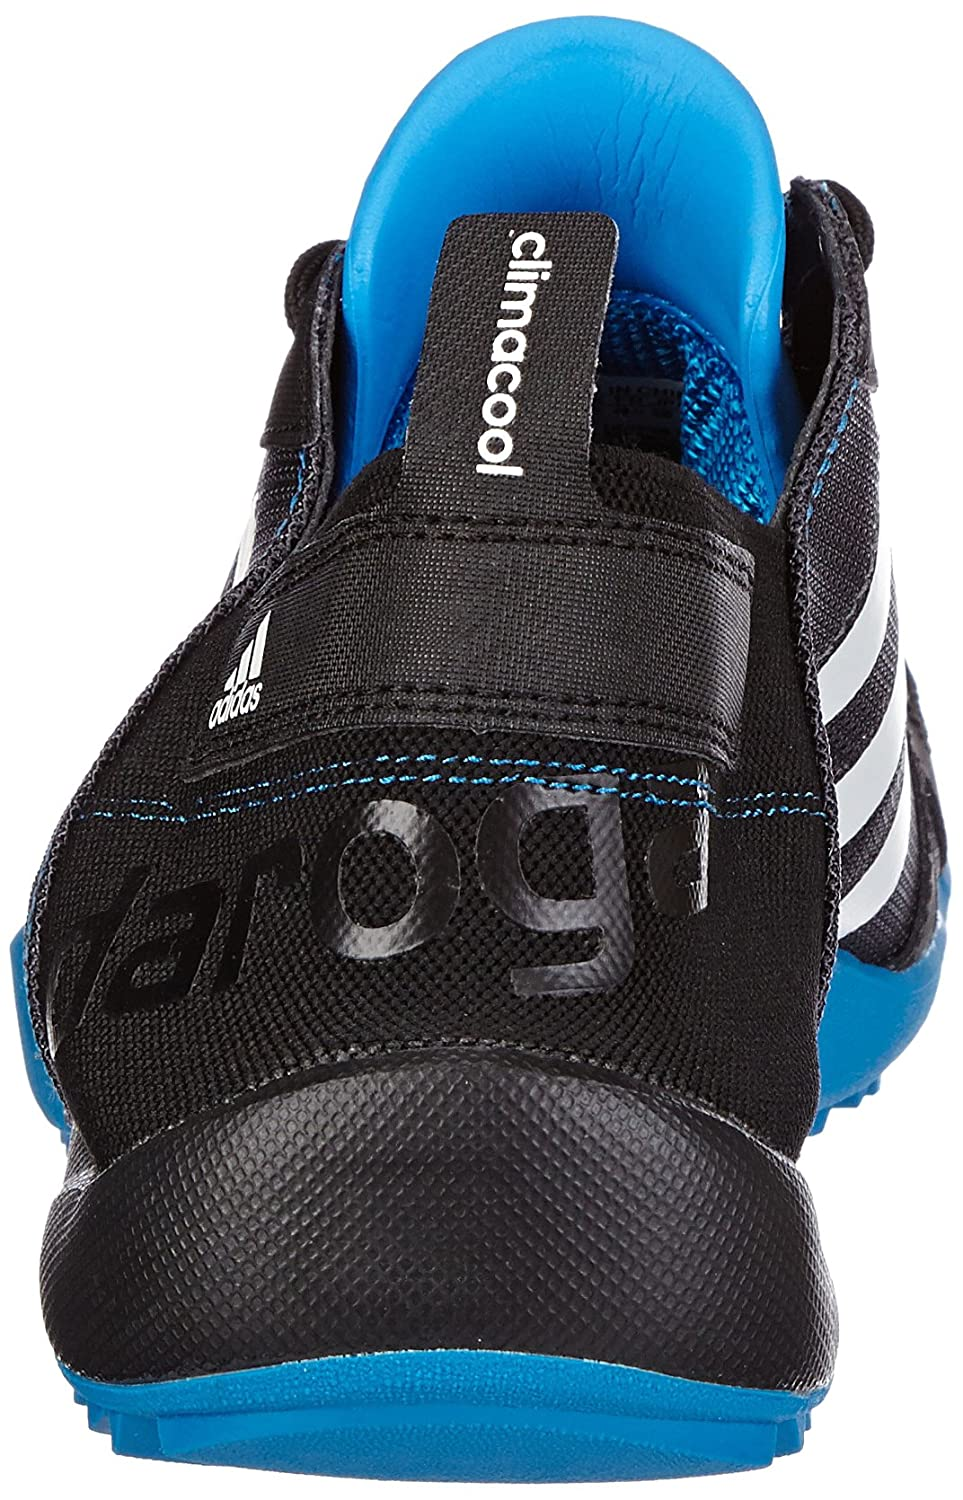 adidas Performance climacool DAROGA TWO 13 Clogs And Mules Mens Blue Blau  (Dark Shale / Chalk 2 / Craft Blue F12) Size: 40 2/3: Amazon.co.uk: Shoes &  Bags